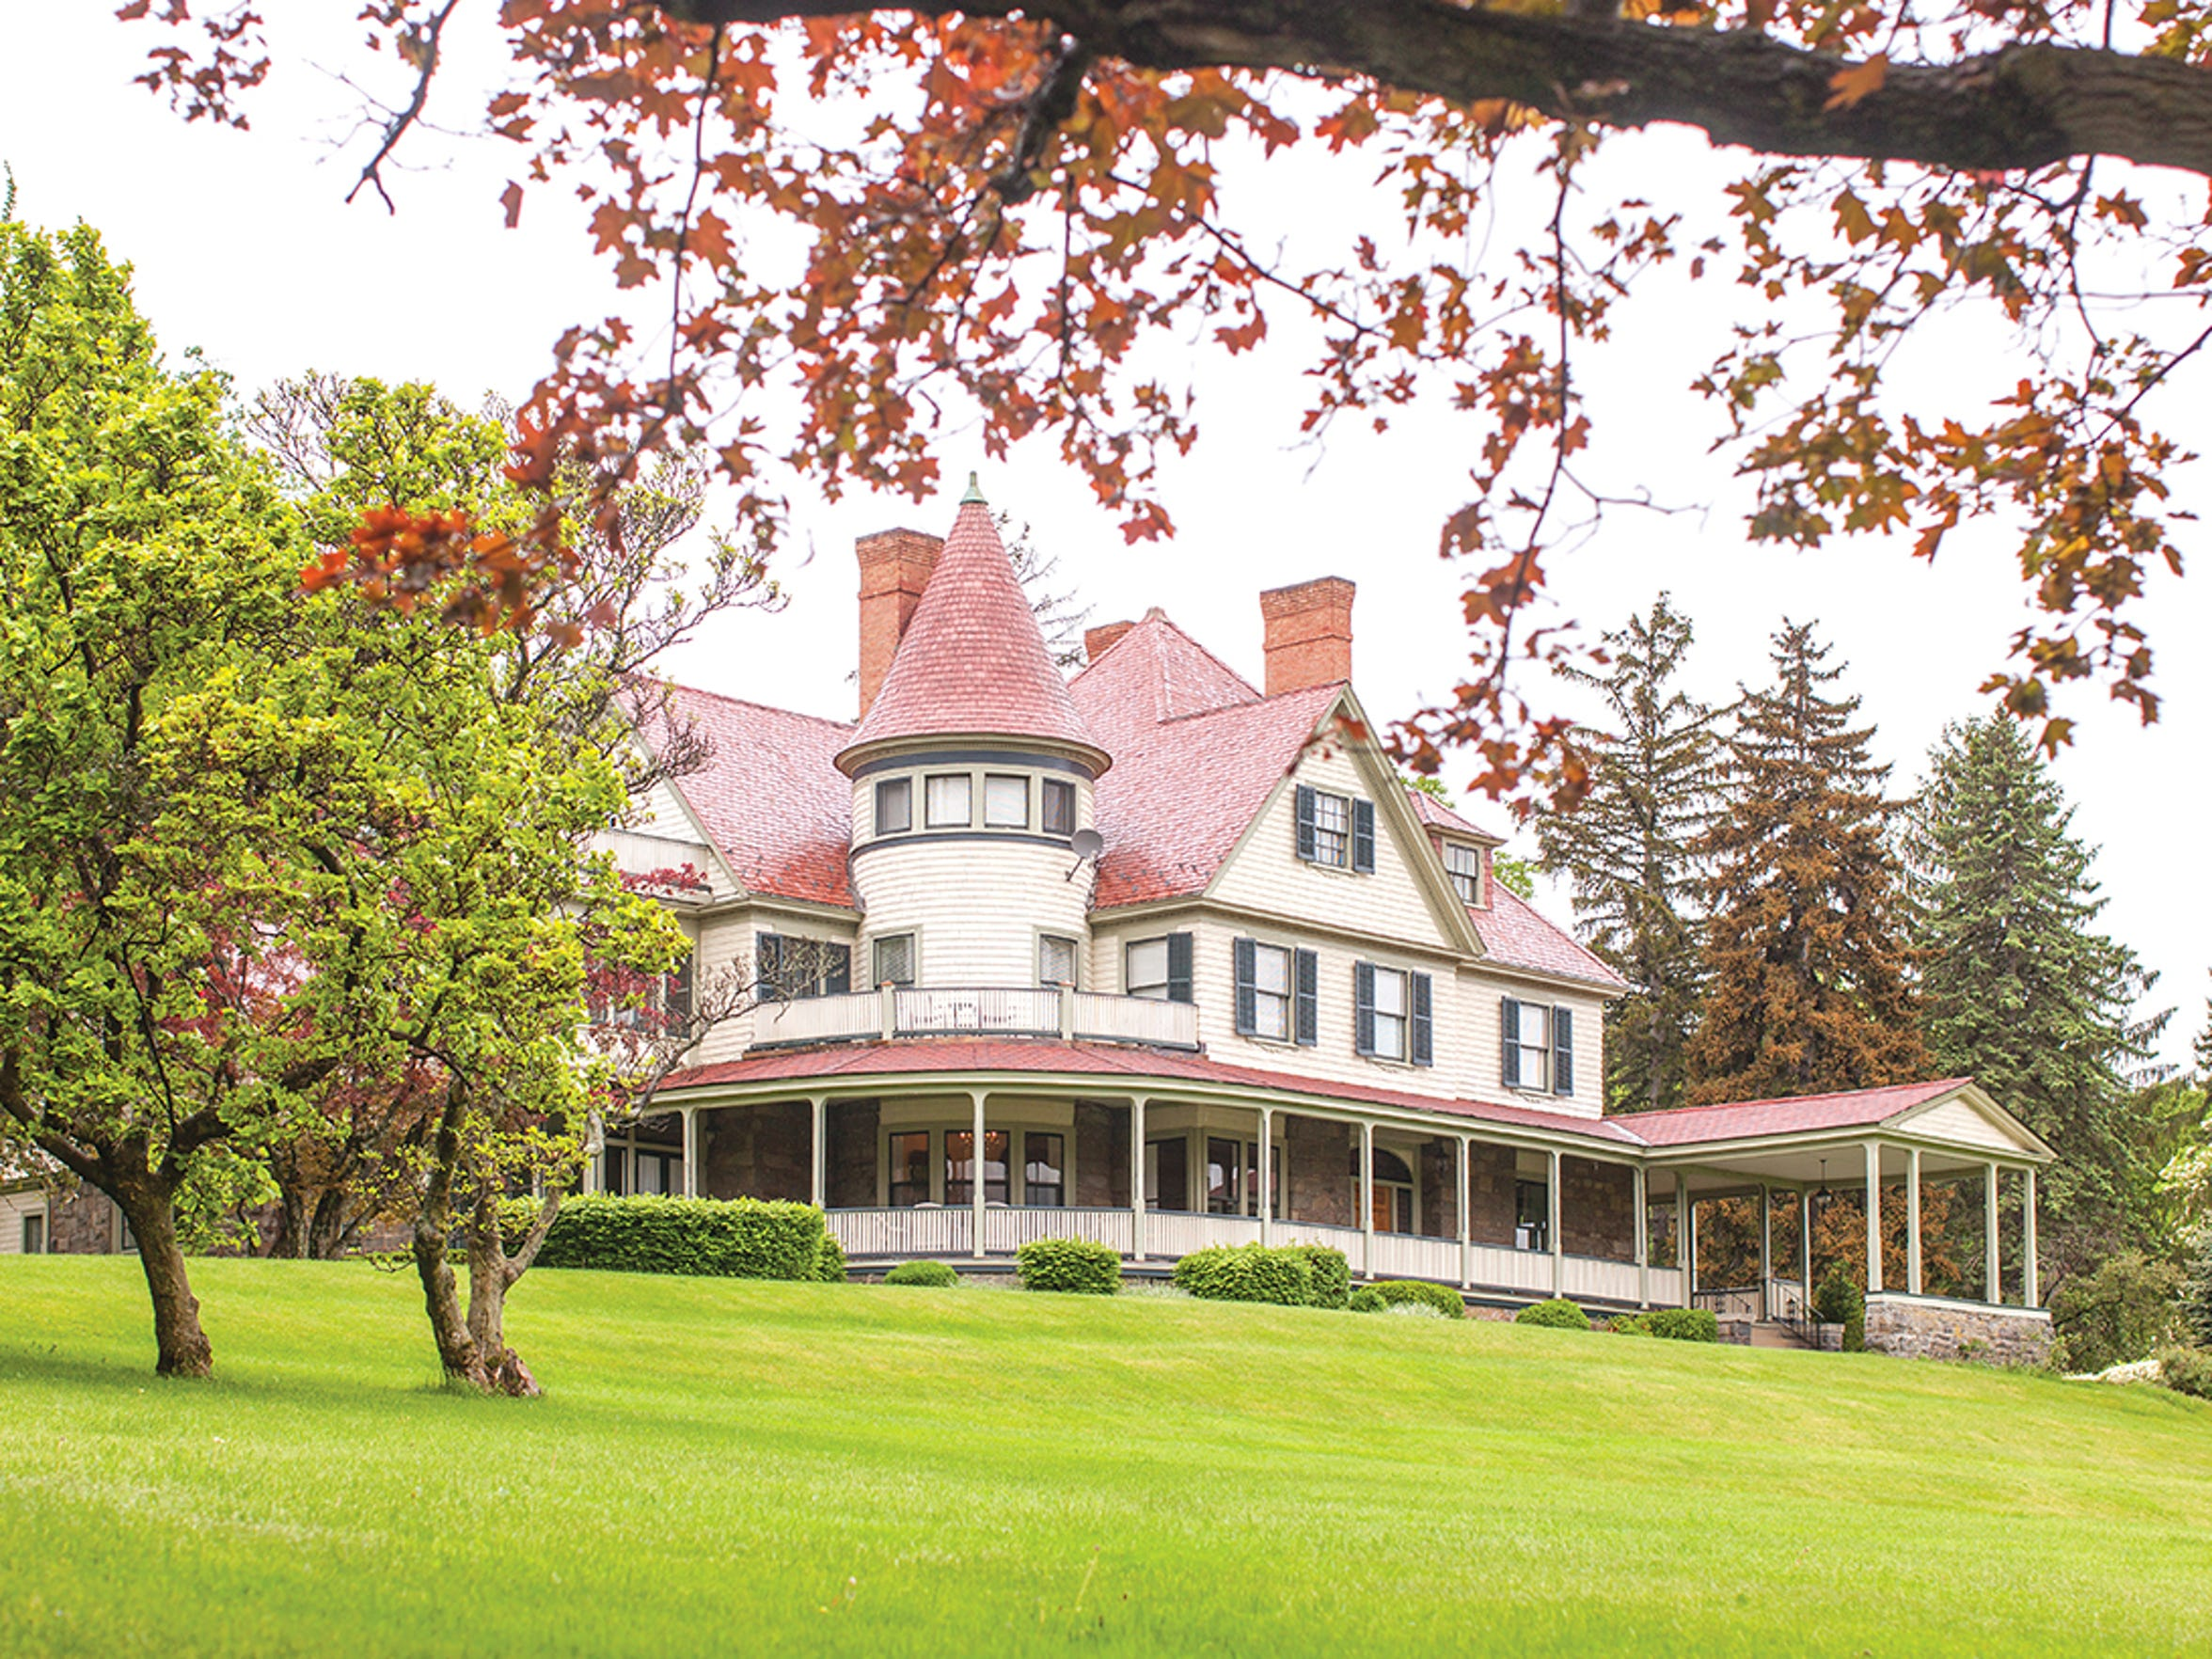 Idlwilde inn in Watkins Glen.